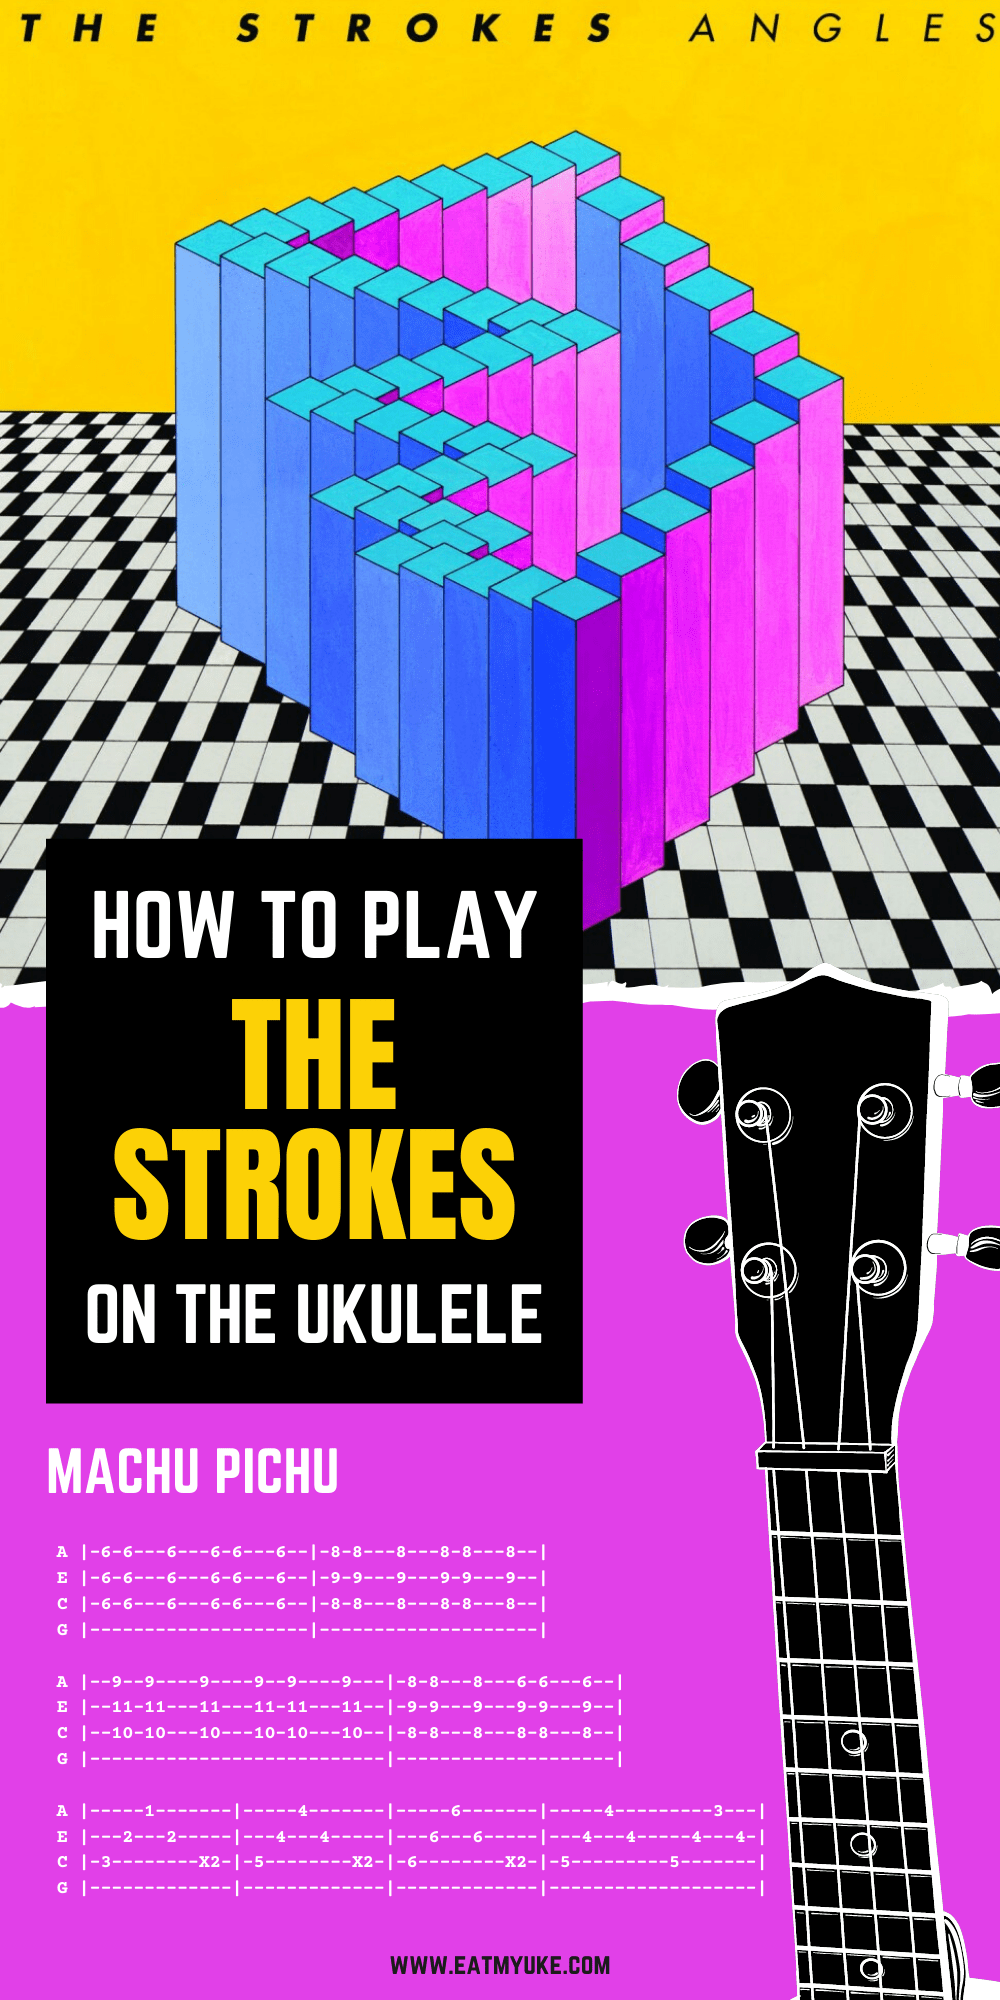 The Strokes Ukulele Tabs Machu Pichu In 2020 Ukulele Tabs Ukulele The Strokes